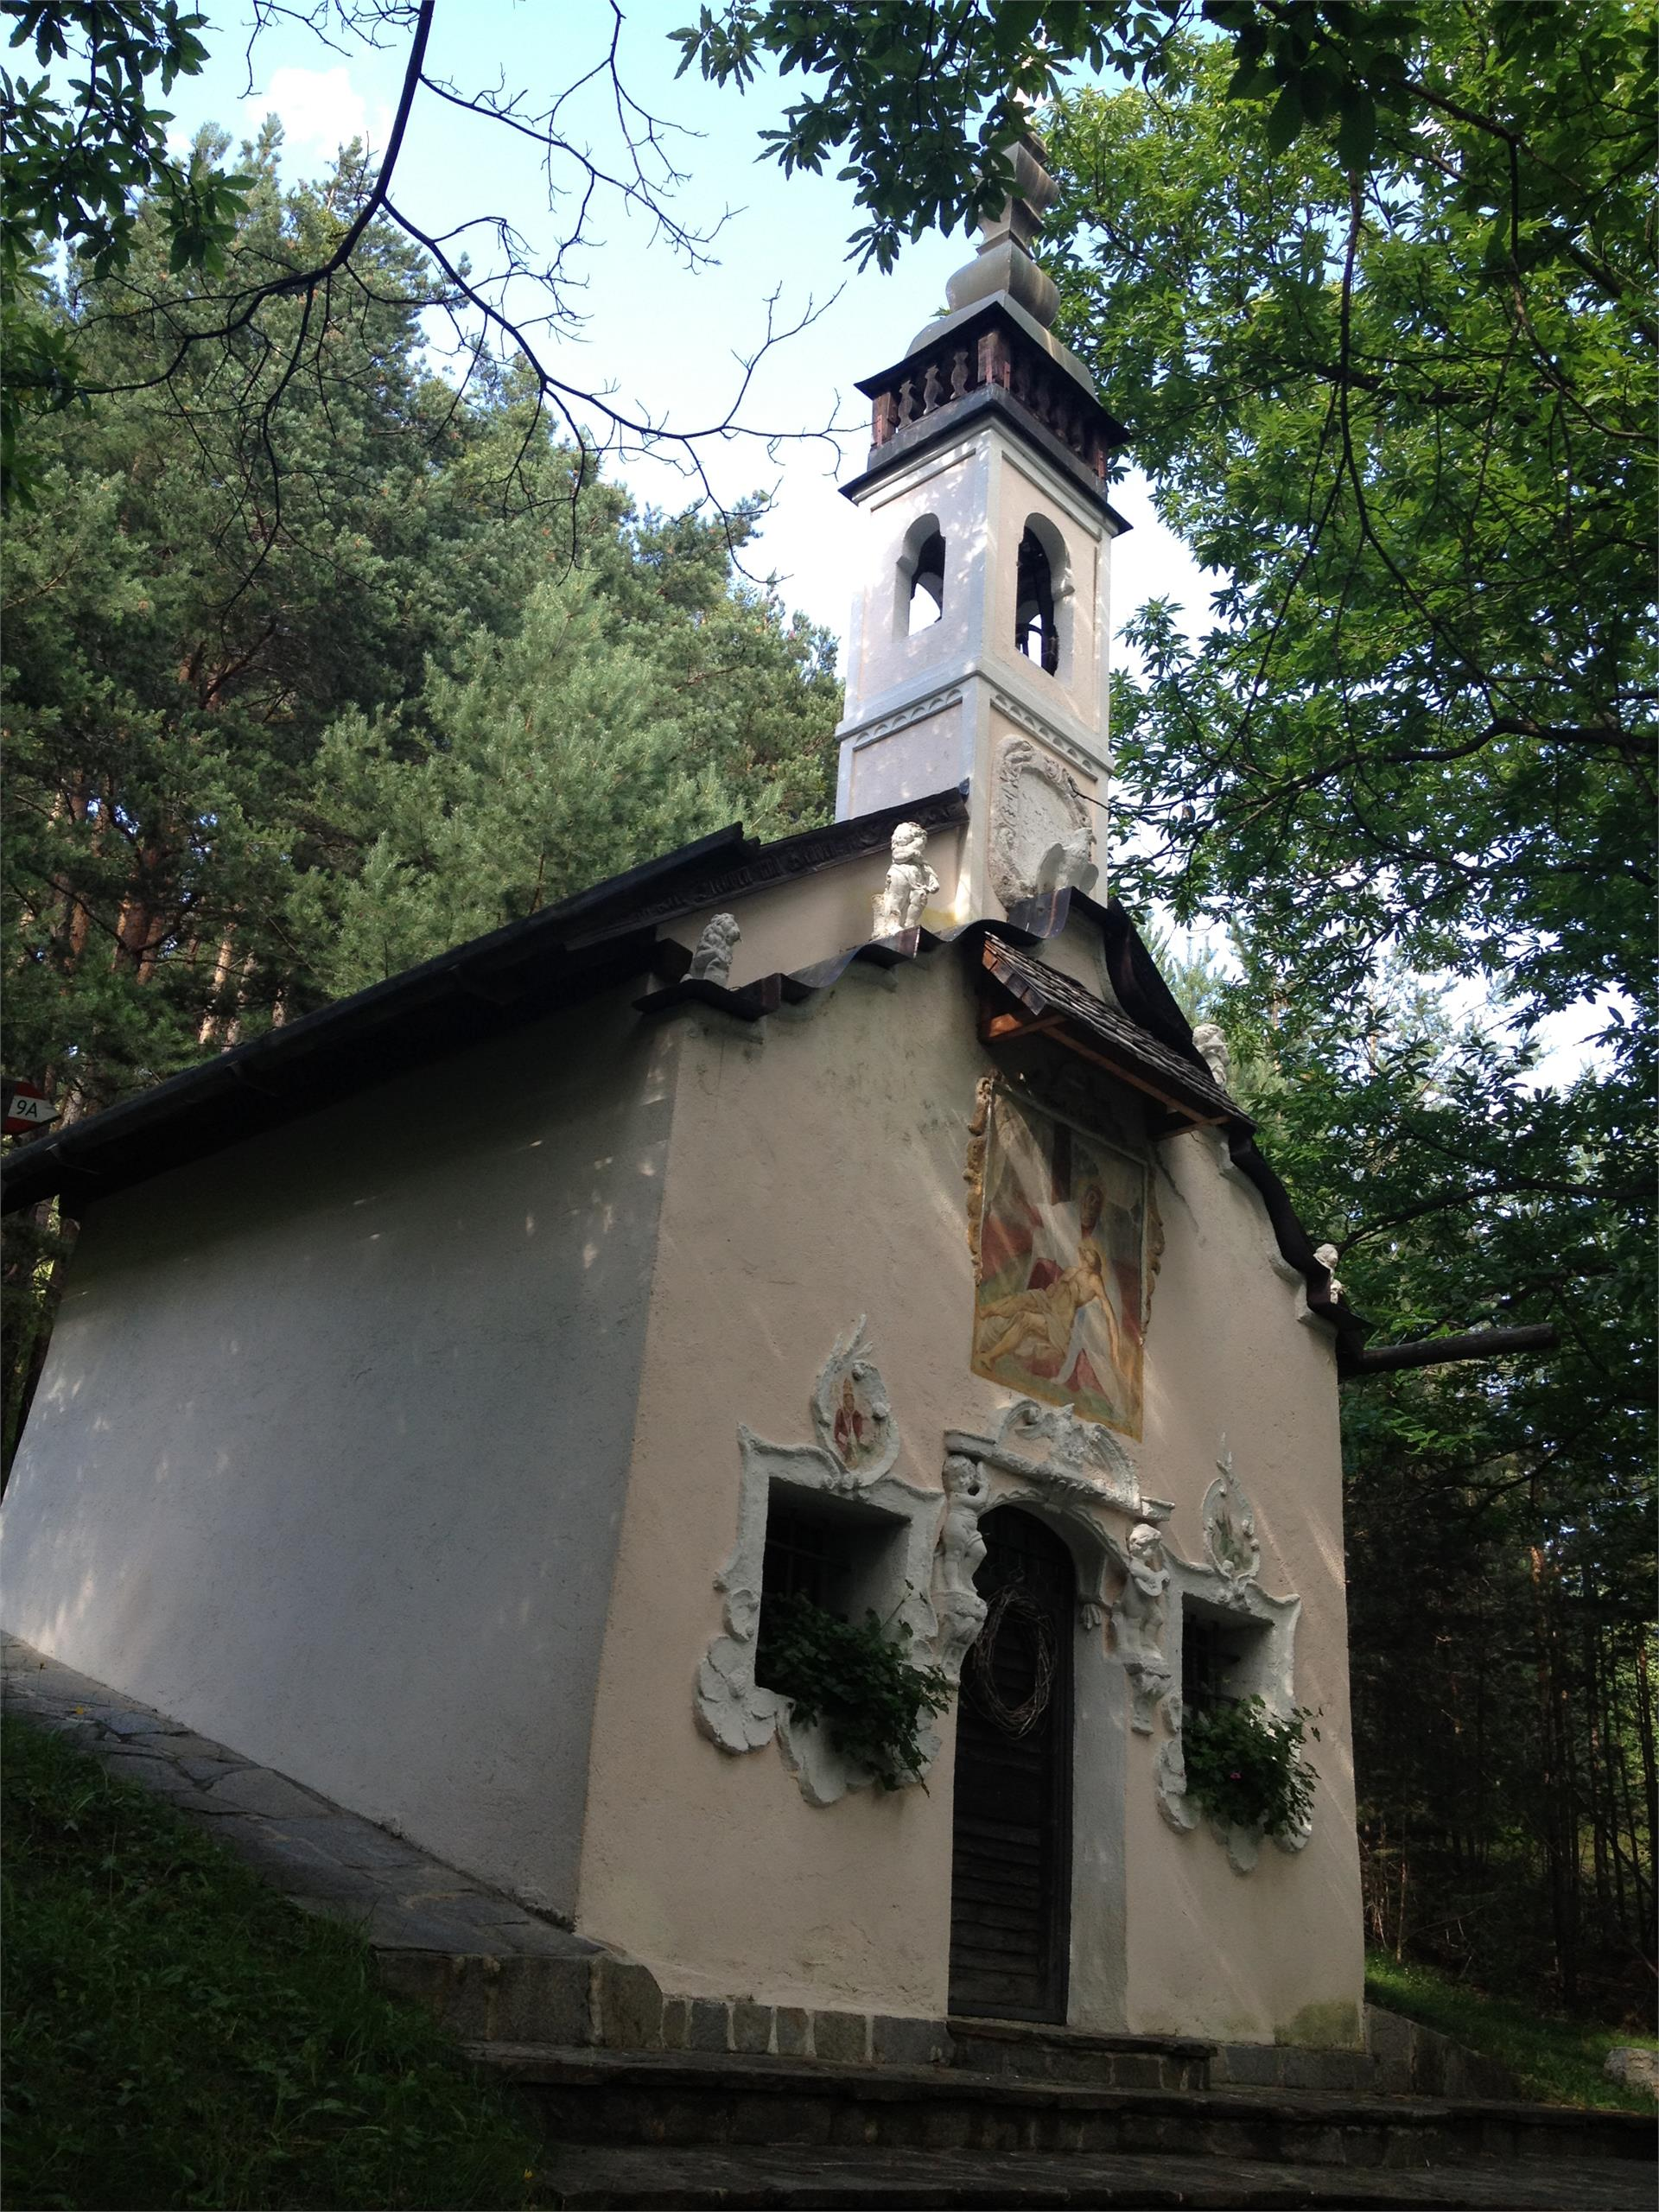 From Aicha/Aica to the Stöcklvater Church in Mühlbach/ rio di Pusteria